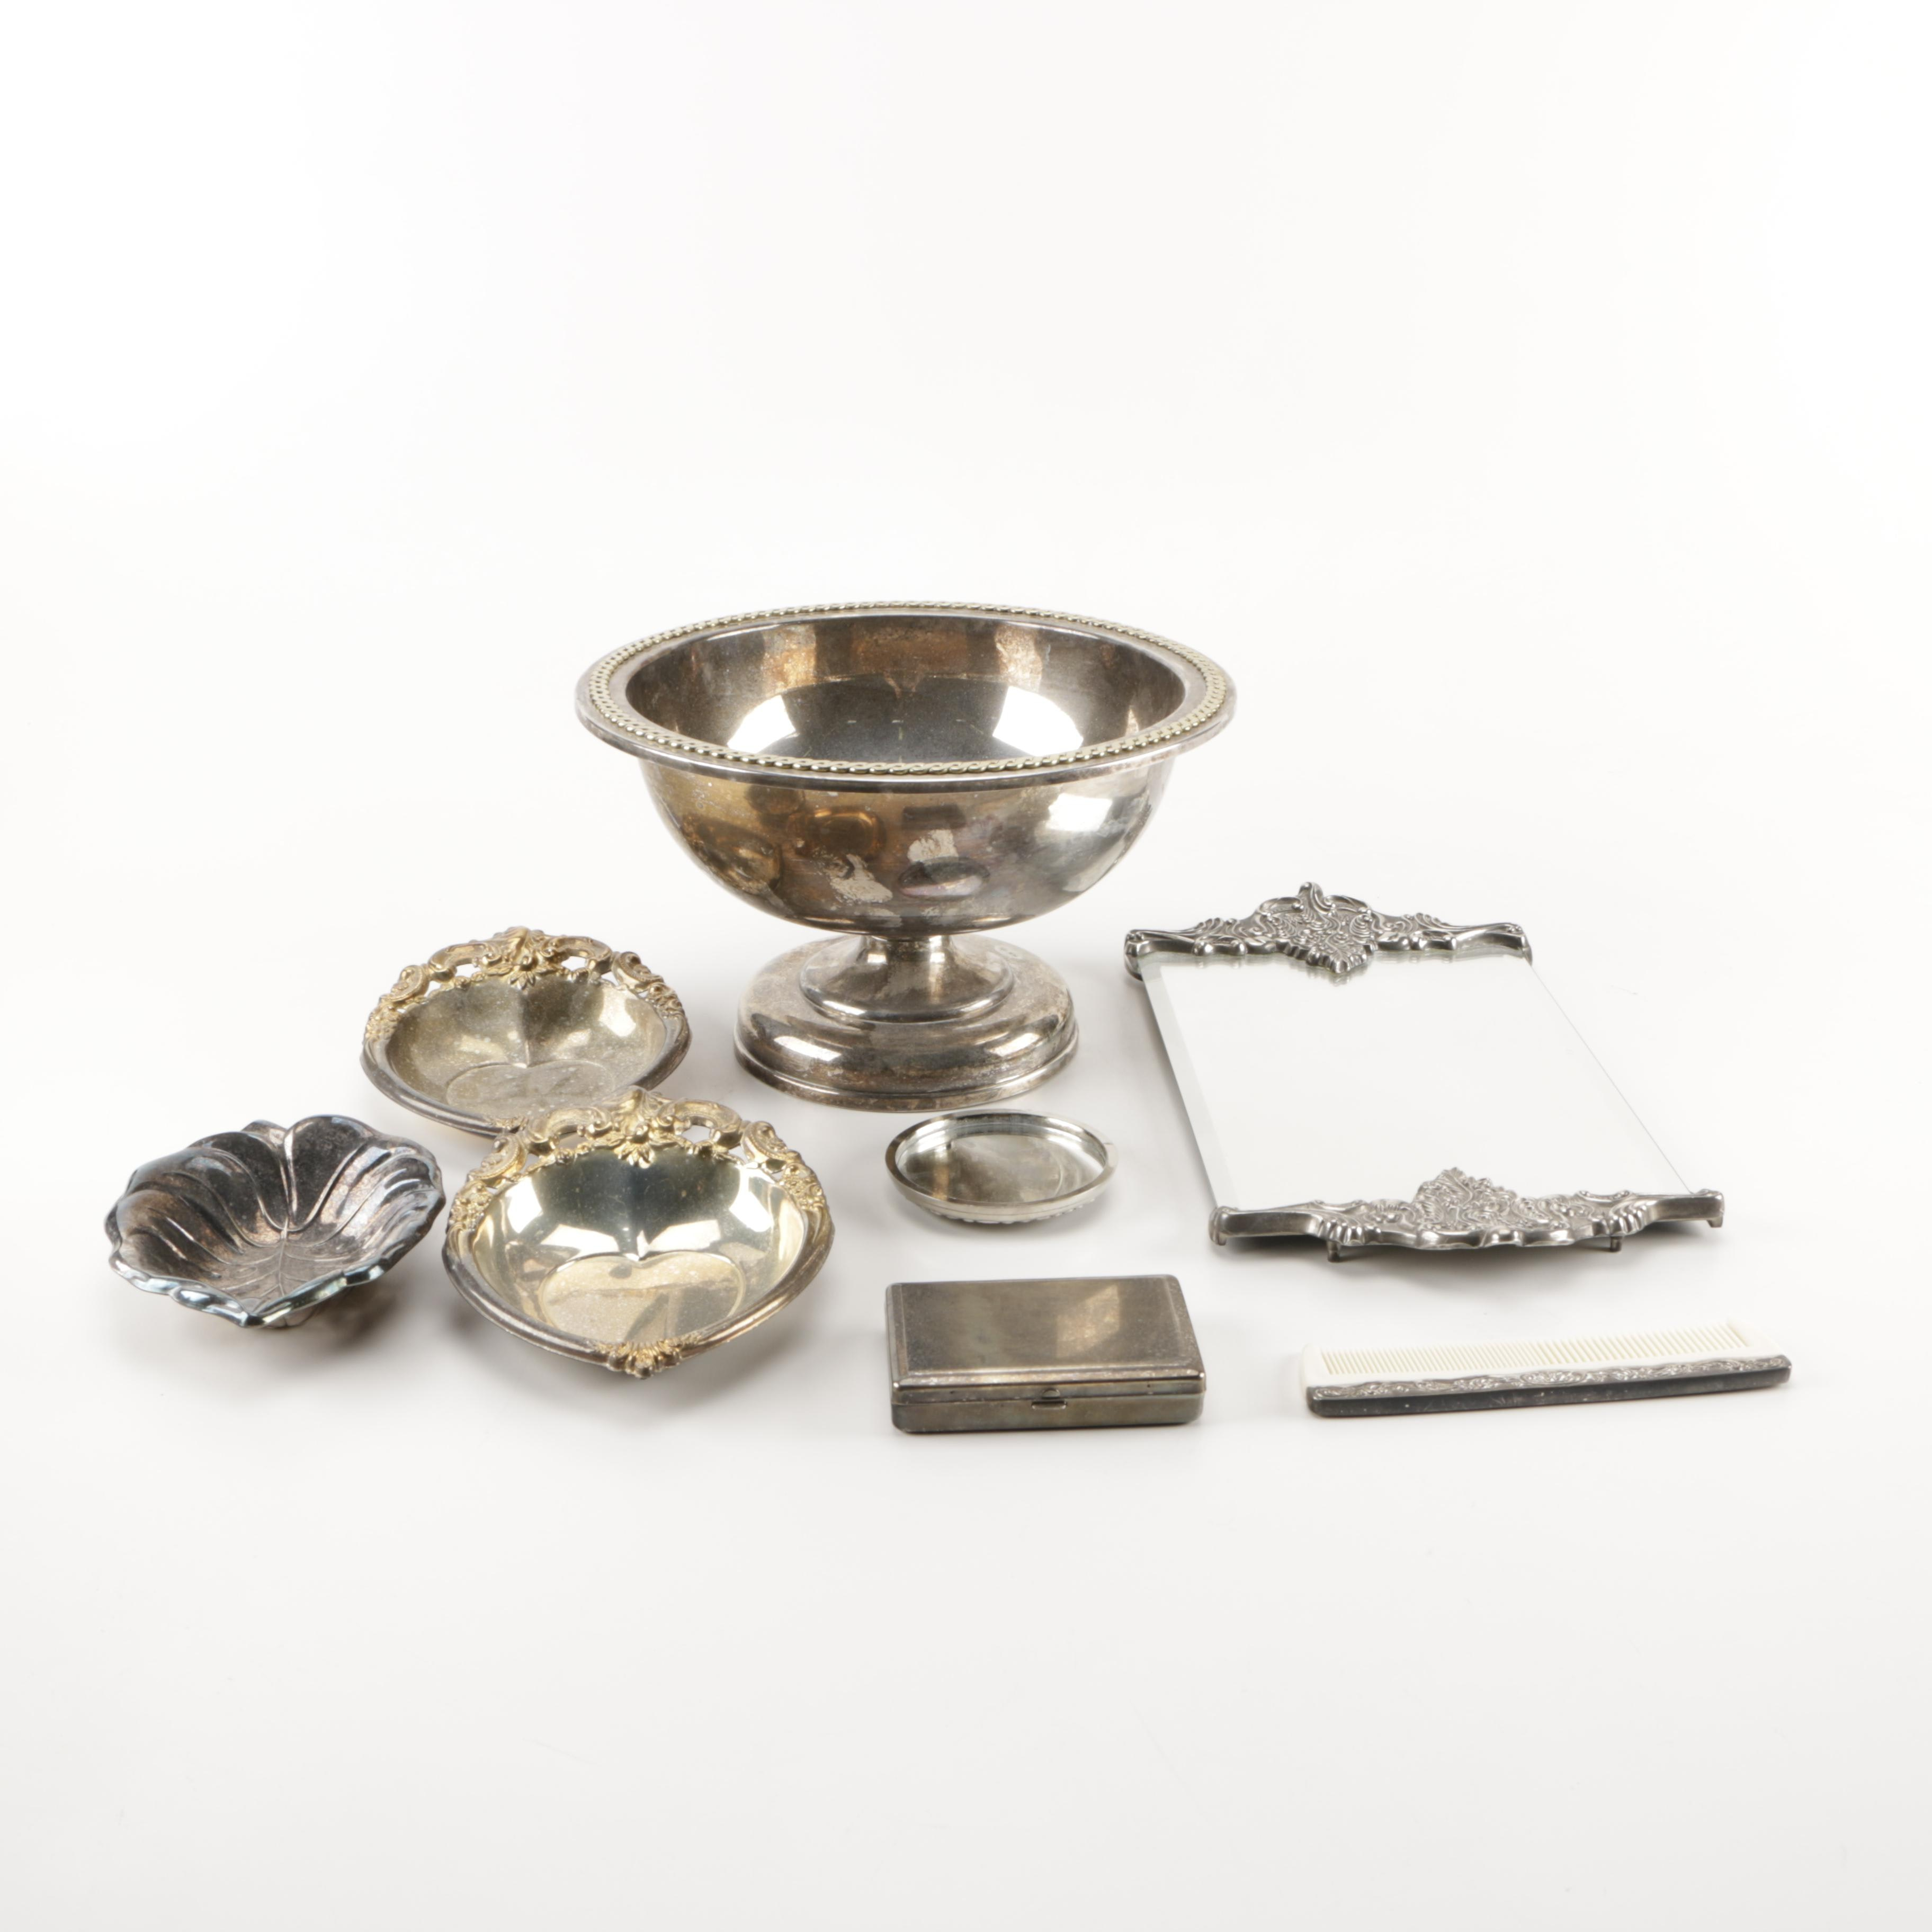 Assortment of Metal Decorative Objects